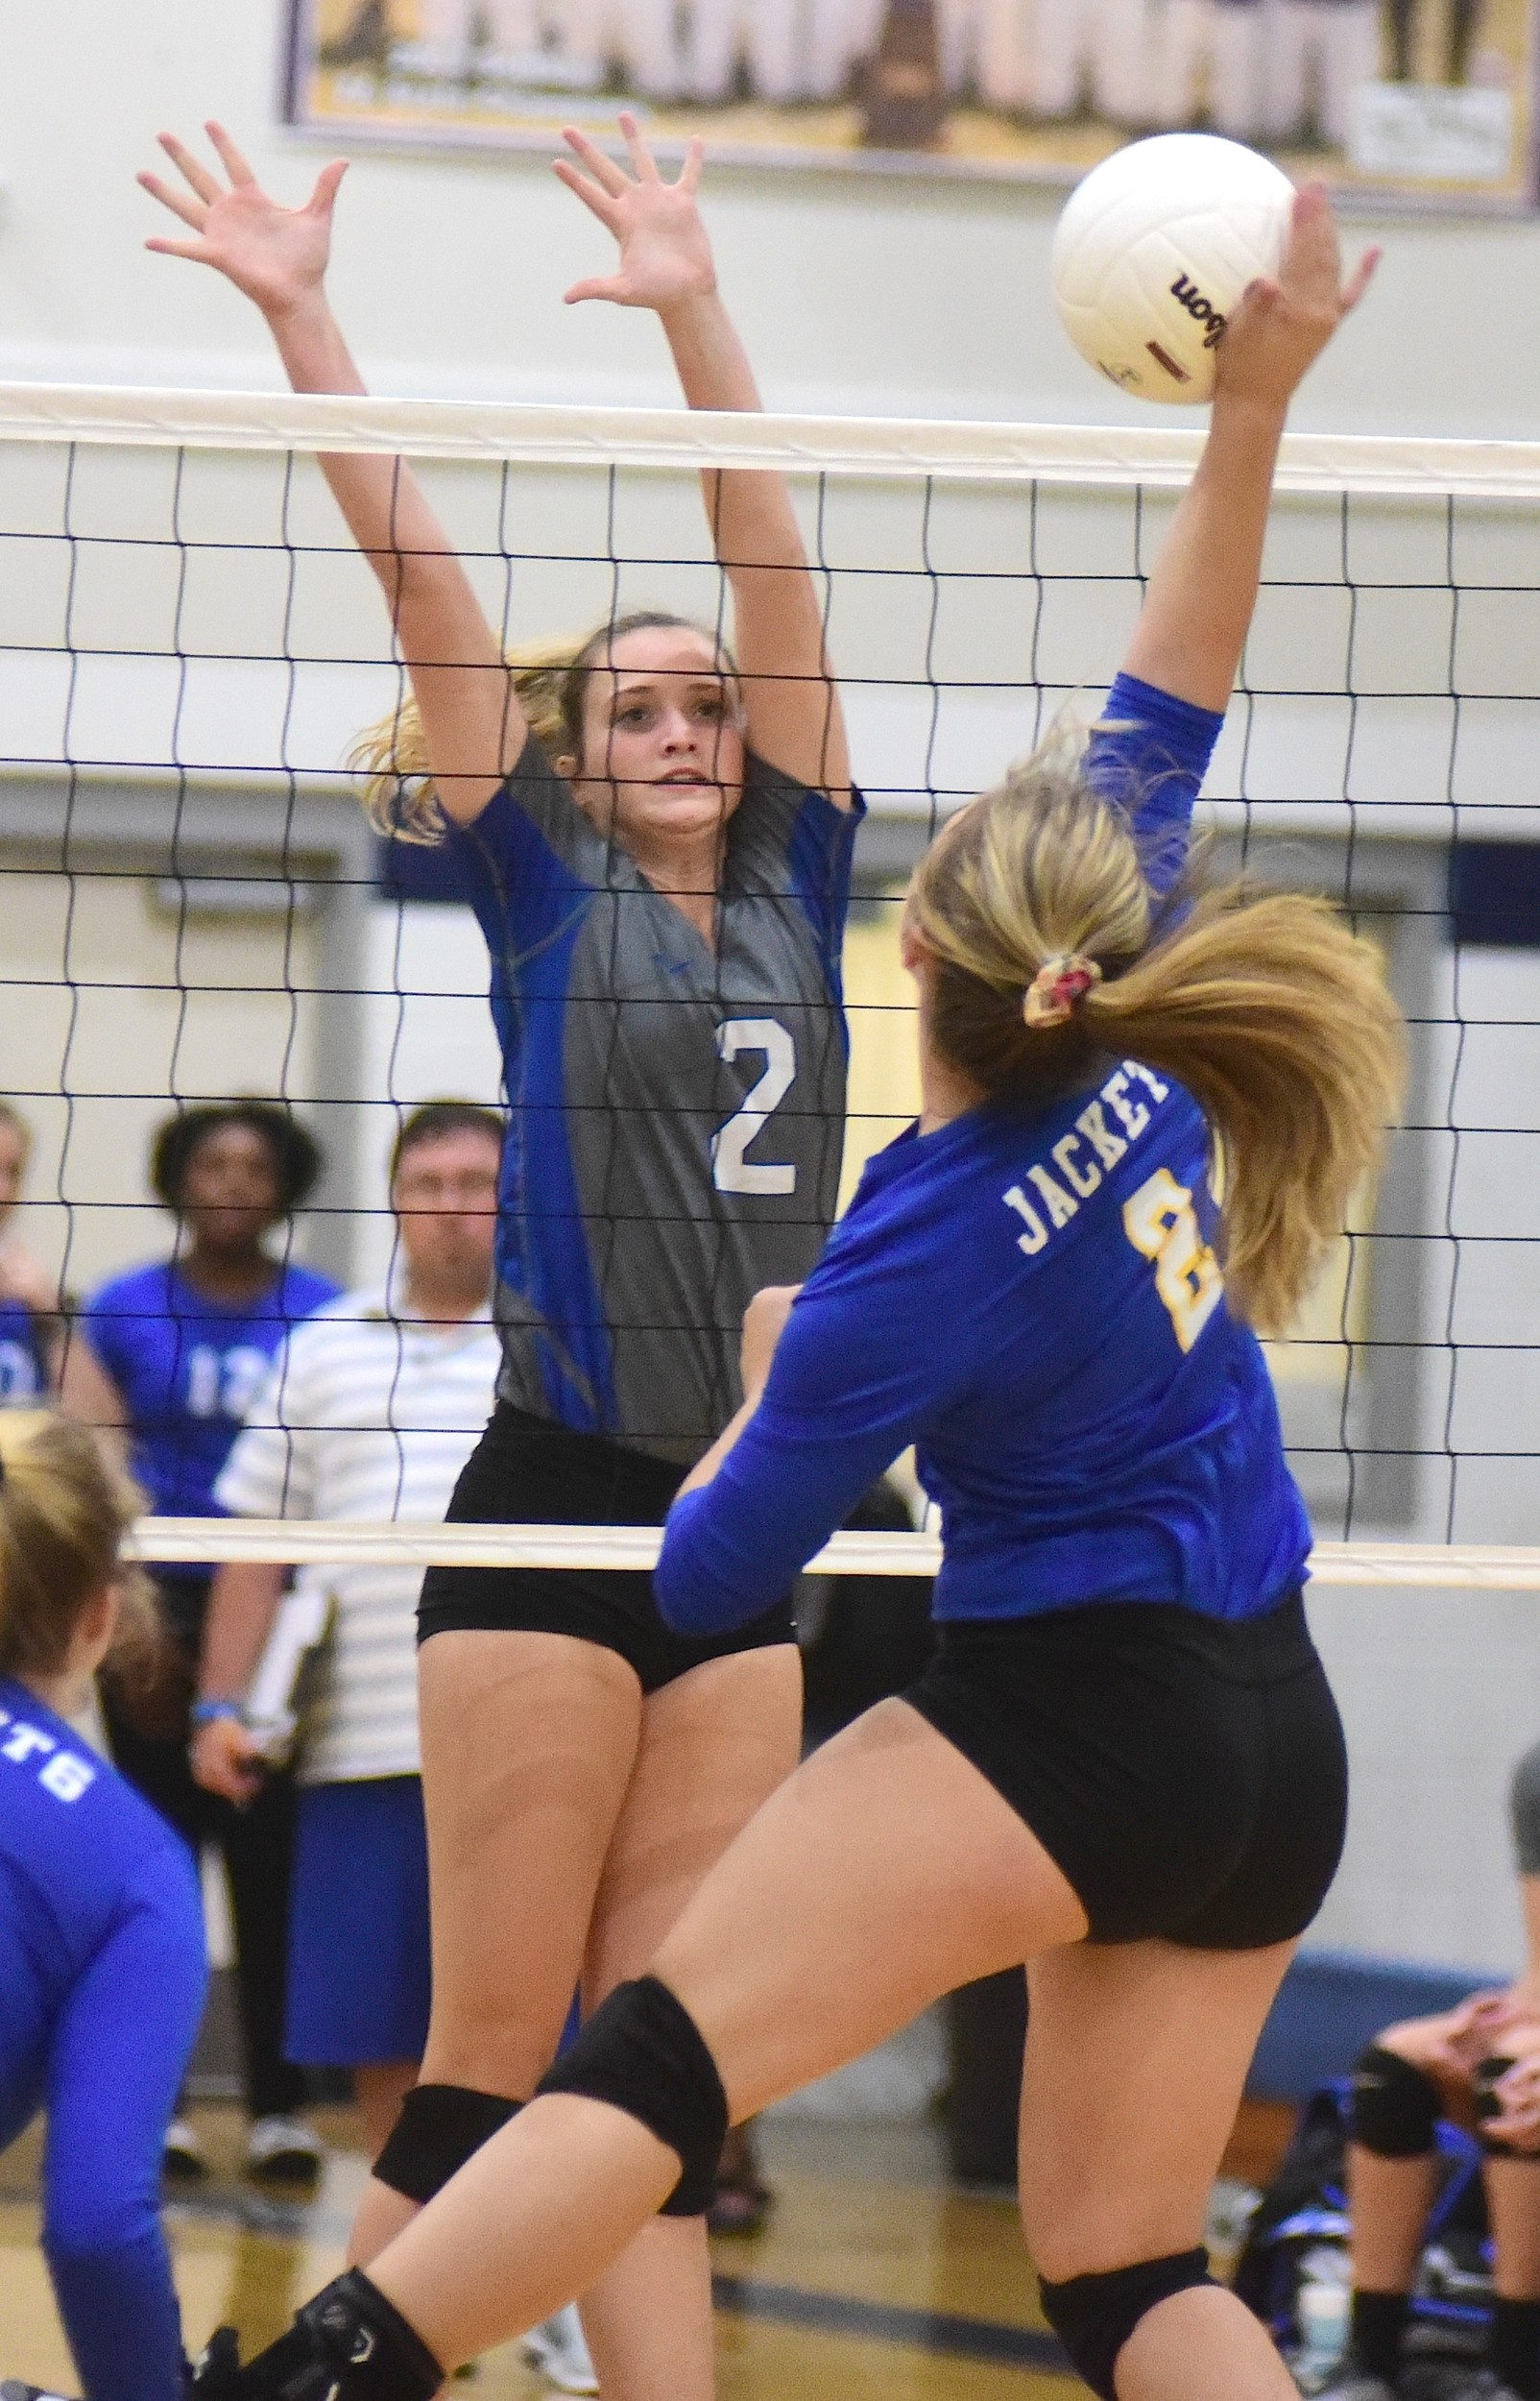 Carbon Hill's Grayson Evans (2) goes up for a block of Curry's Mairabella Nail (8) during their match in the Walker County Volleyball Tournament at Oakman High School on Thursday. Carbon Hill went 2-0 on the day. Matches resume at 9 a.m. on Saturday.